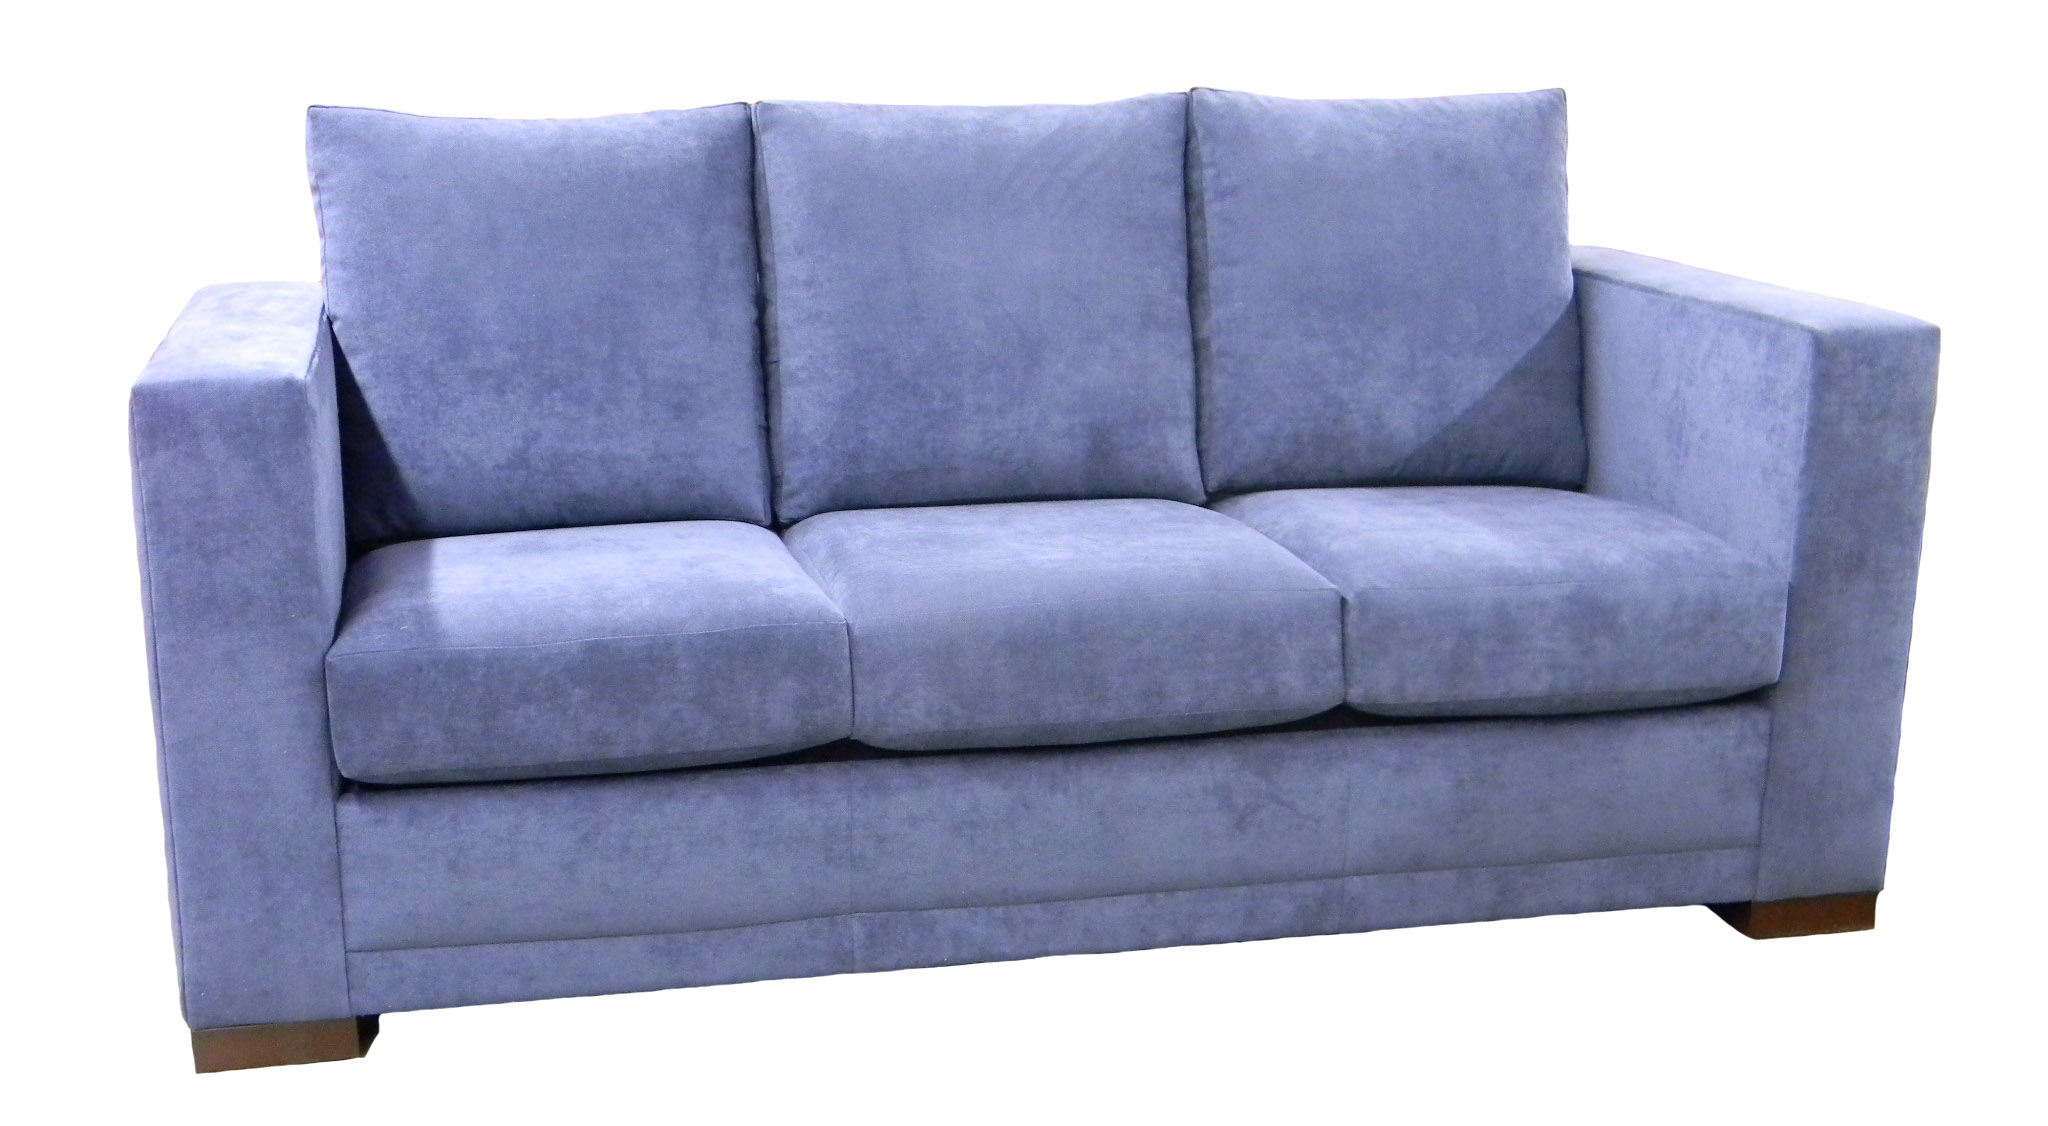 Marlowe Queen Sleeper Sofa